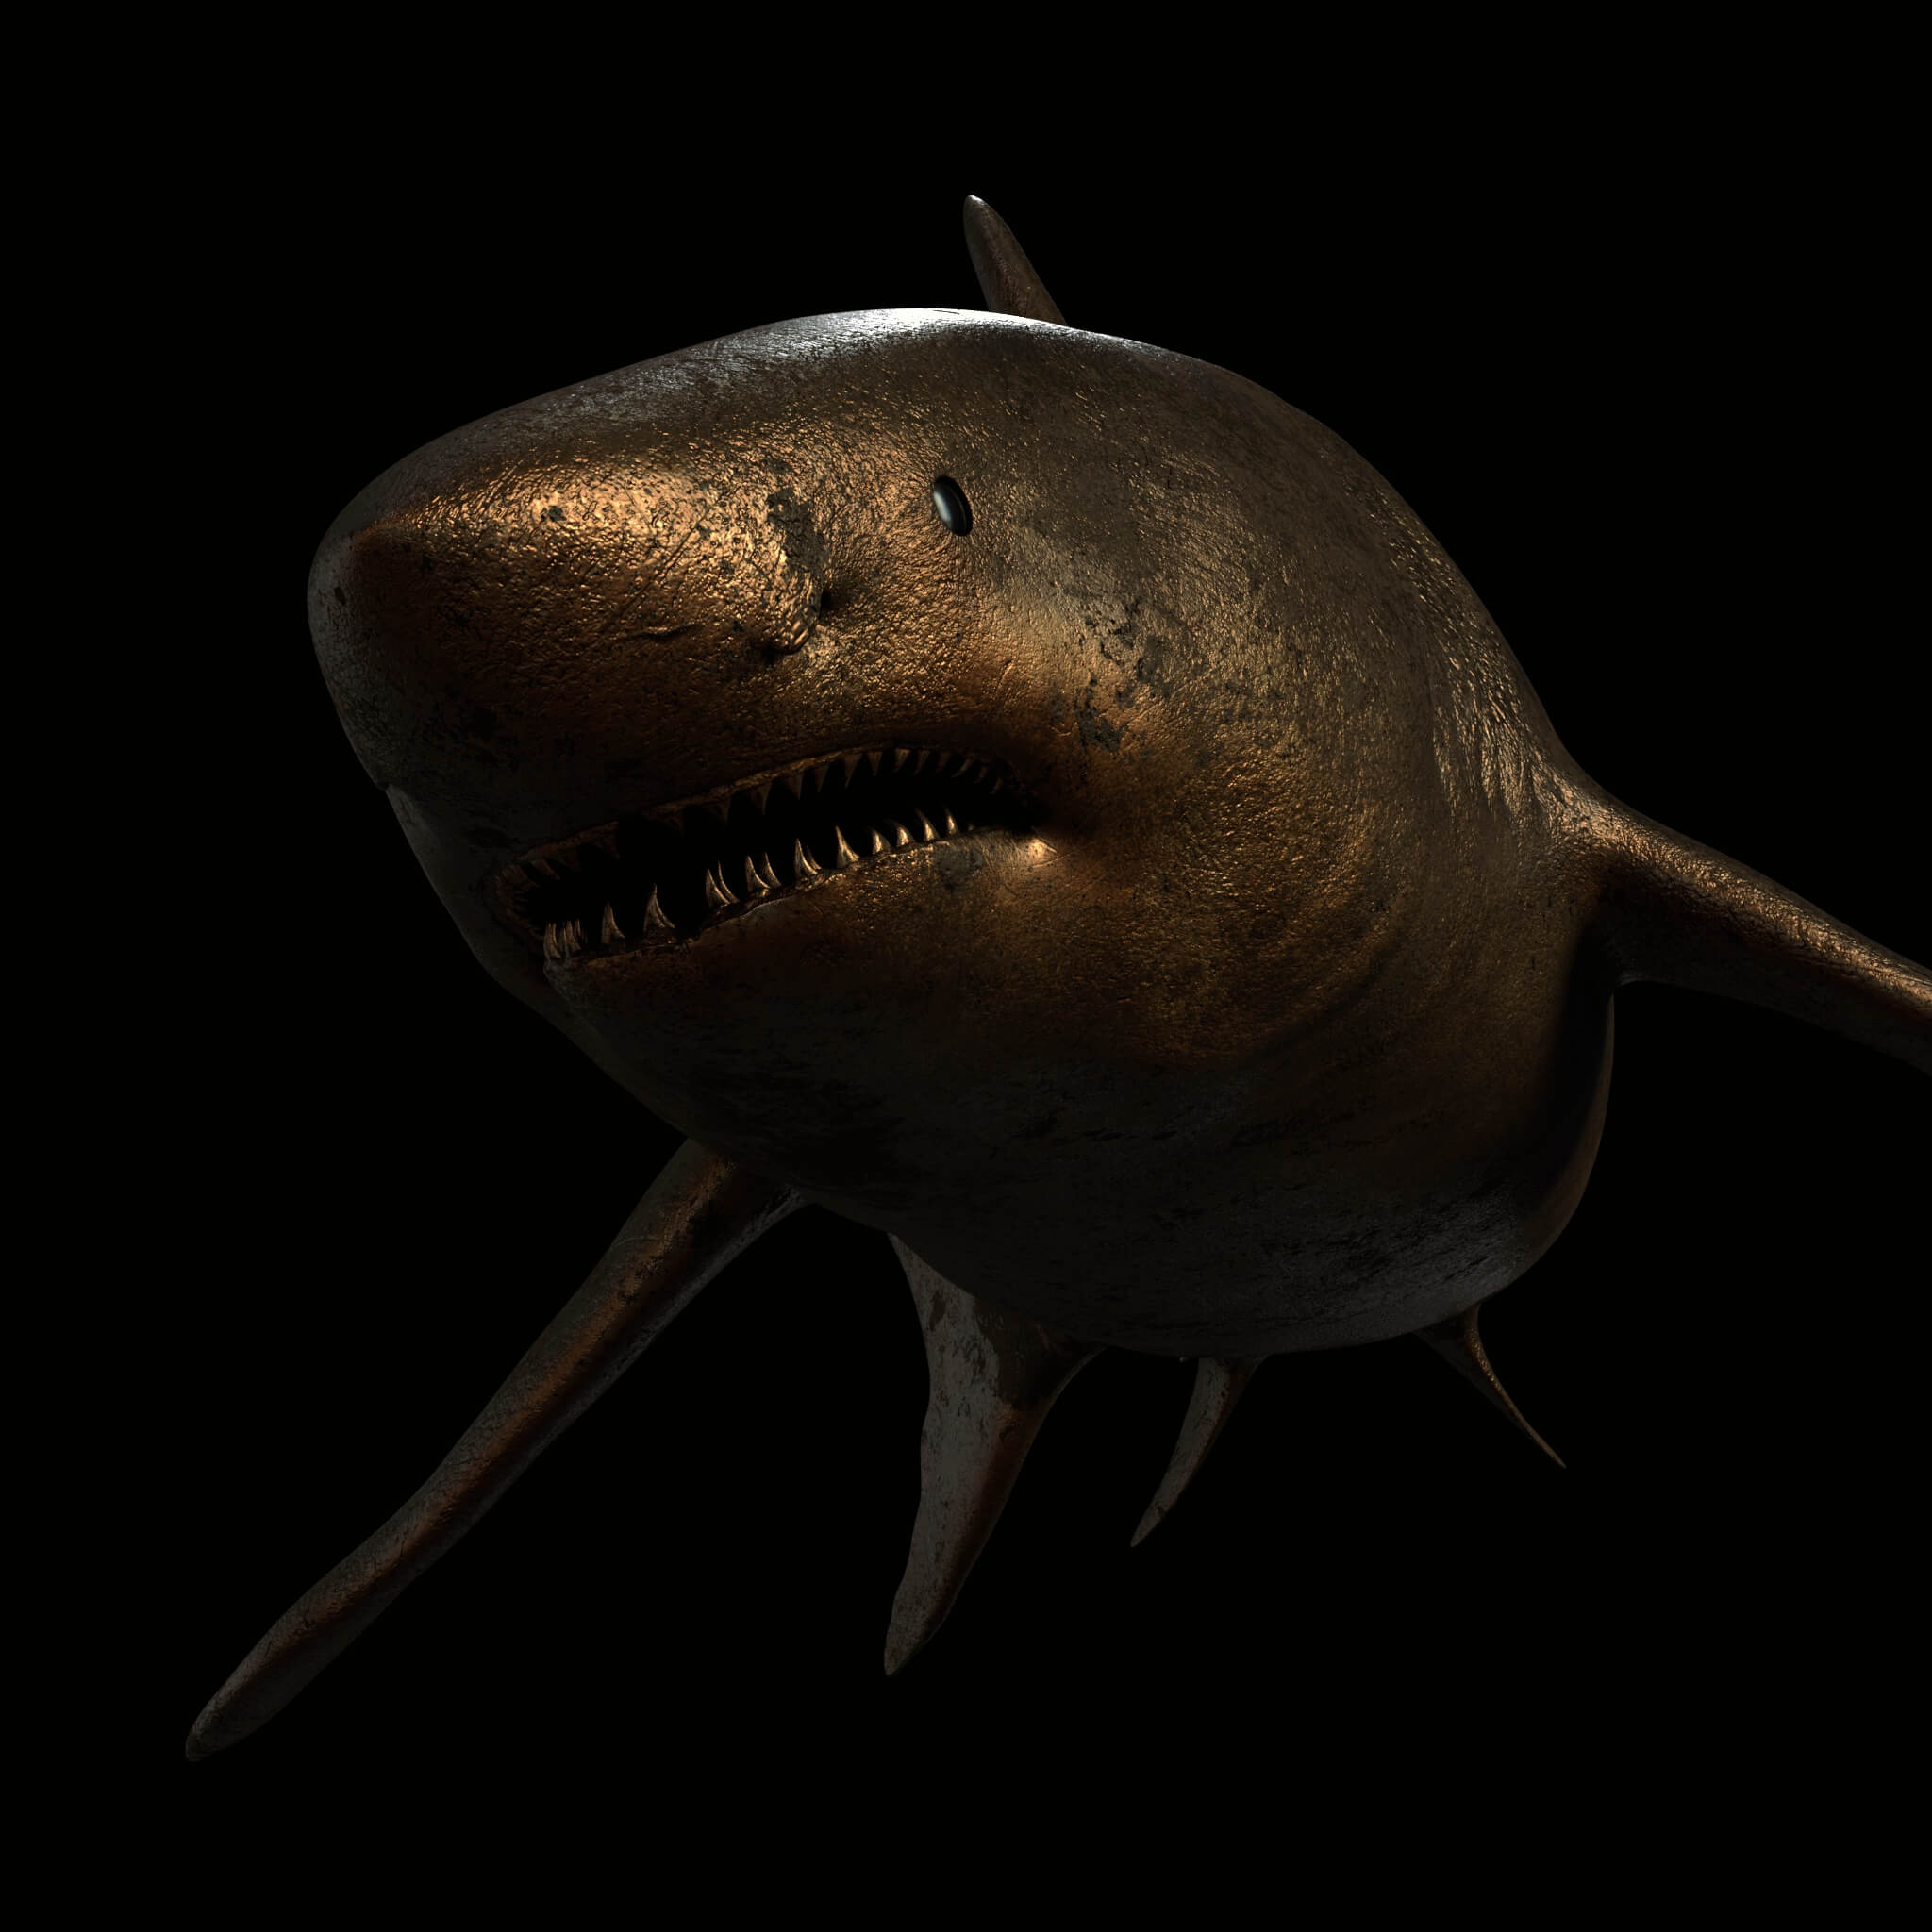 3D render of a shark with a procedural bronzo material